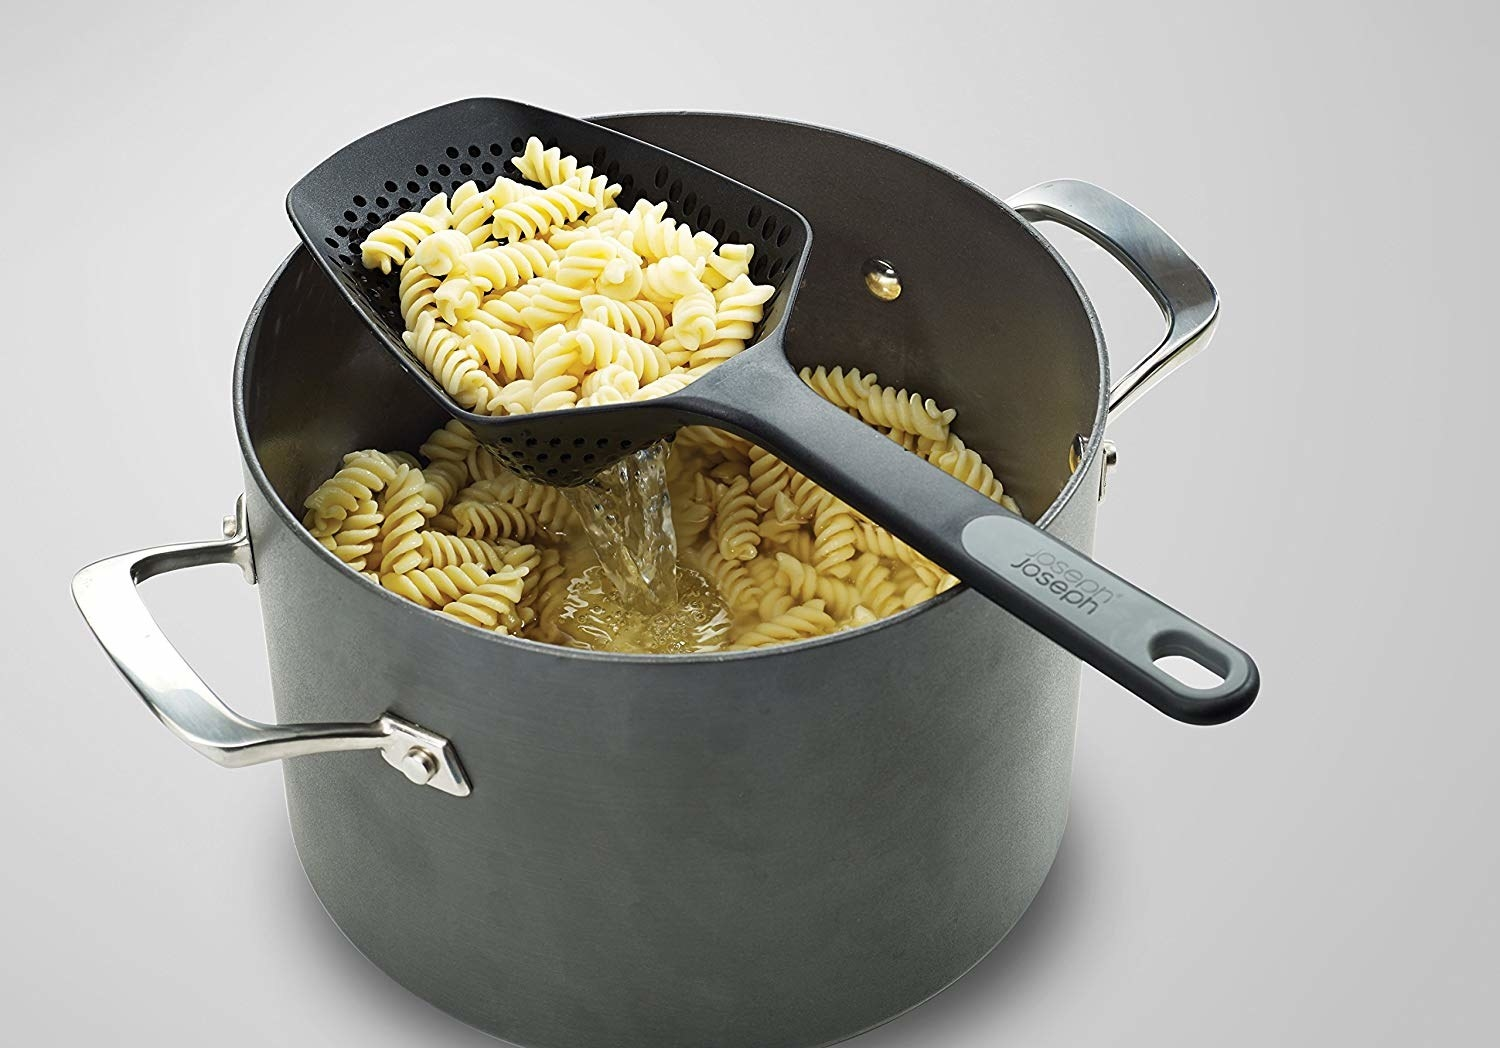 The colander strainer filled with draining pasta over a pot.